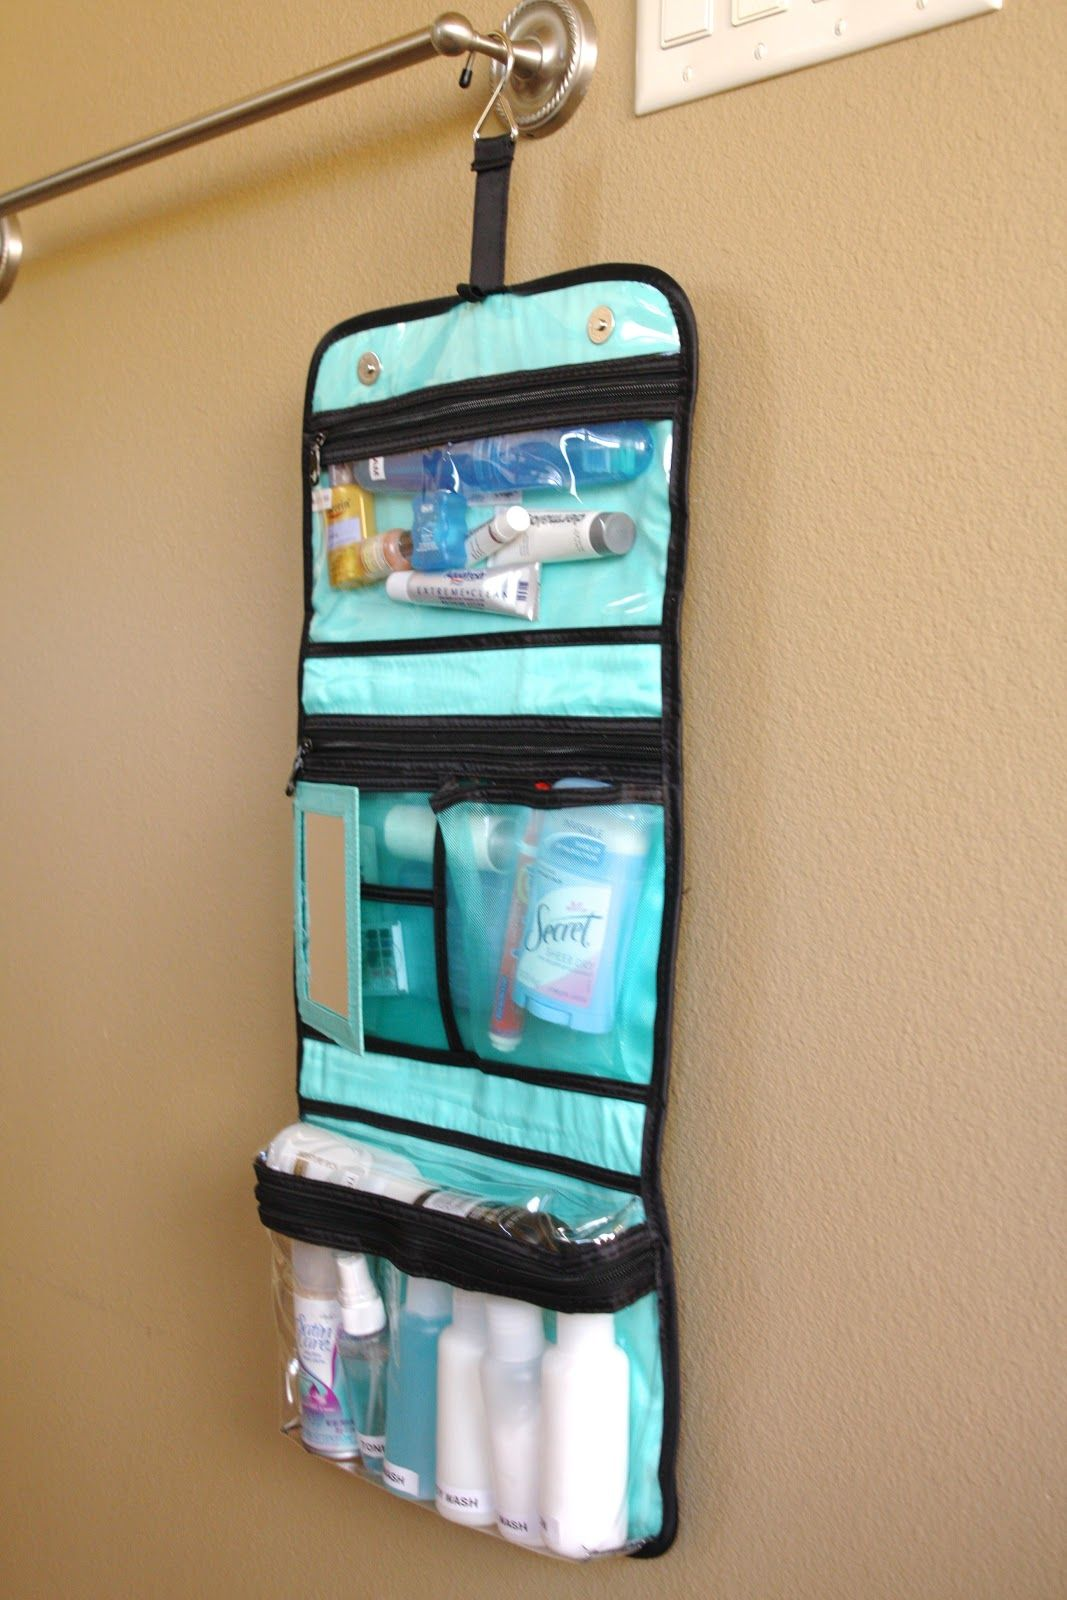 I keep a toiletry bag fully stocked at all times. Just add prescriptions  and contacts to go. Hanging bag is convenient where shelf counter space is  ... 91e483a9b7